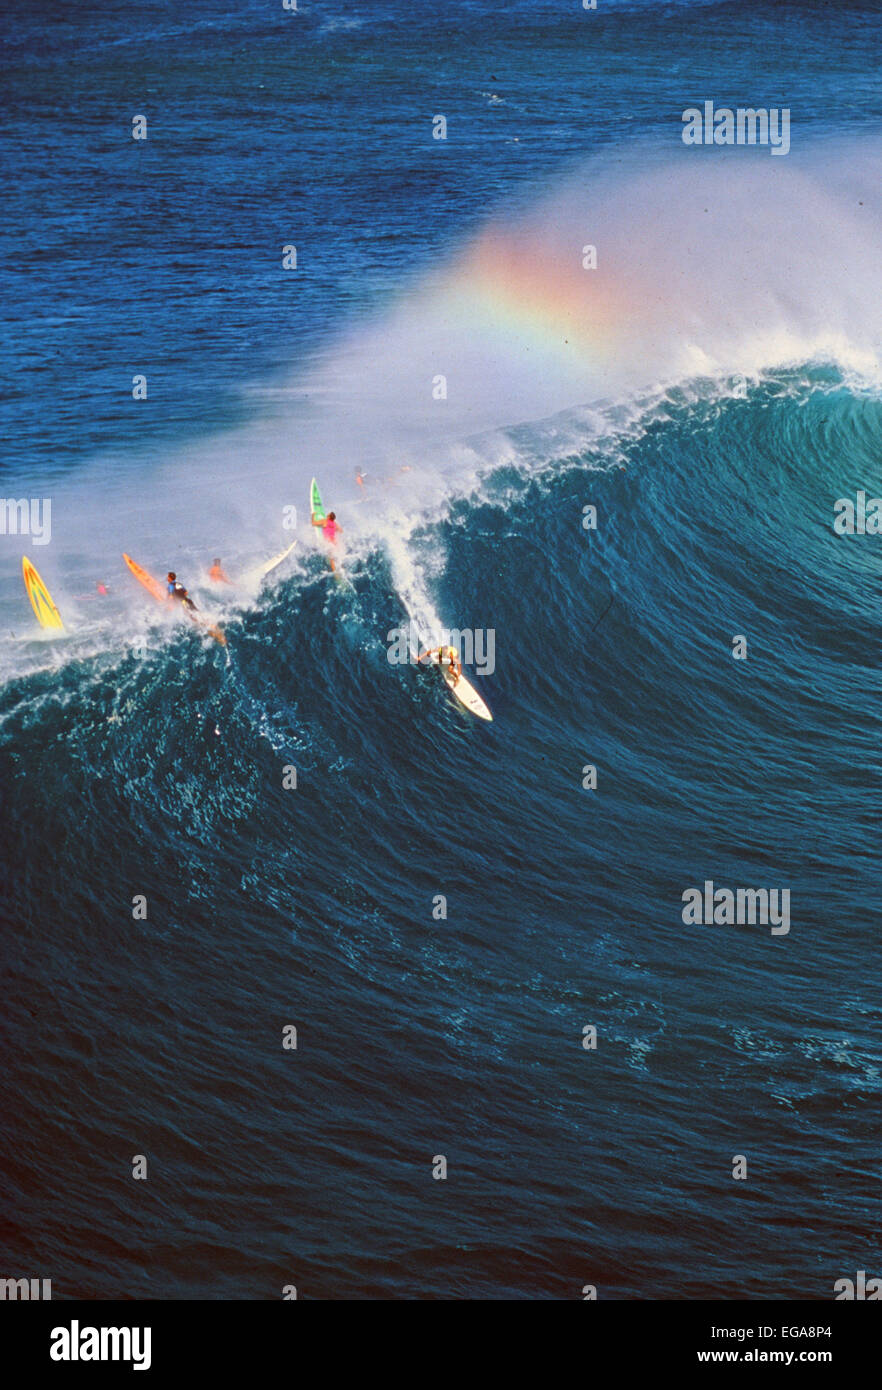 Surfing, North Shore, Oahu, Hawaii, Editorial use only no model release - Stock Image